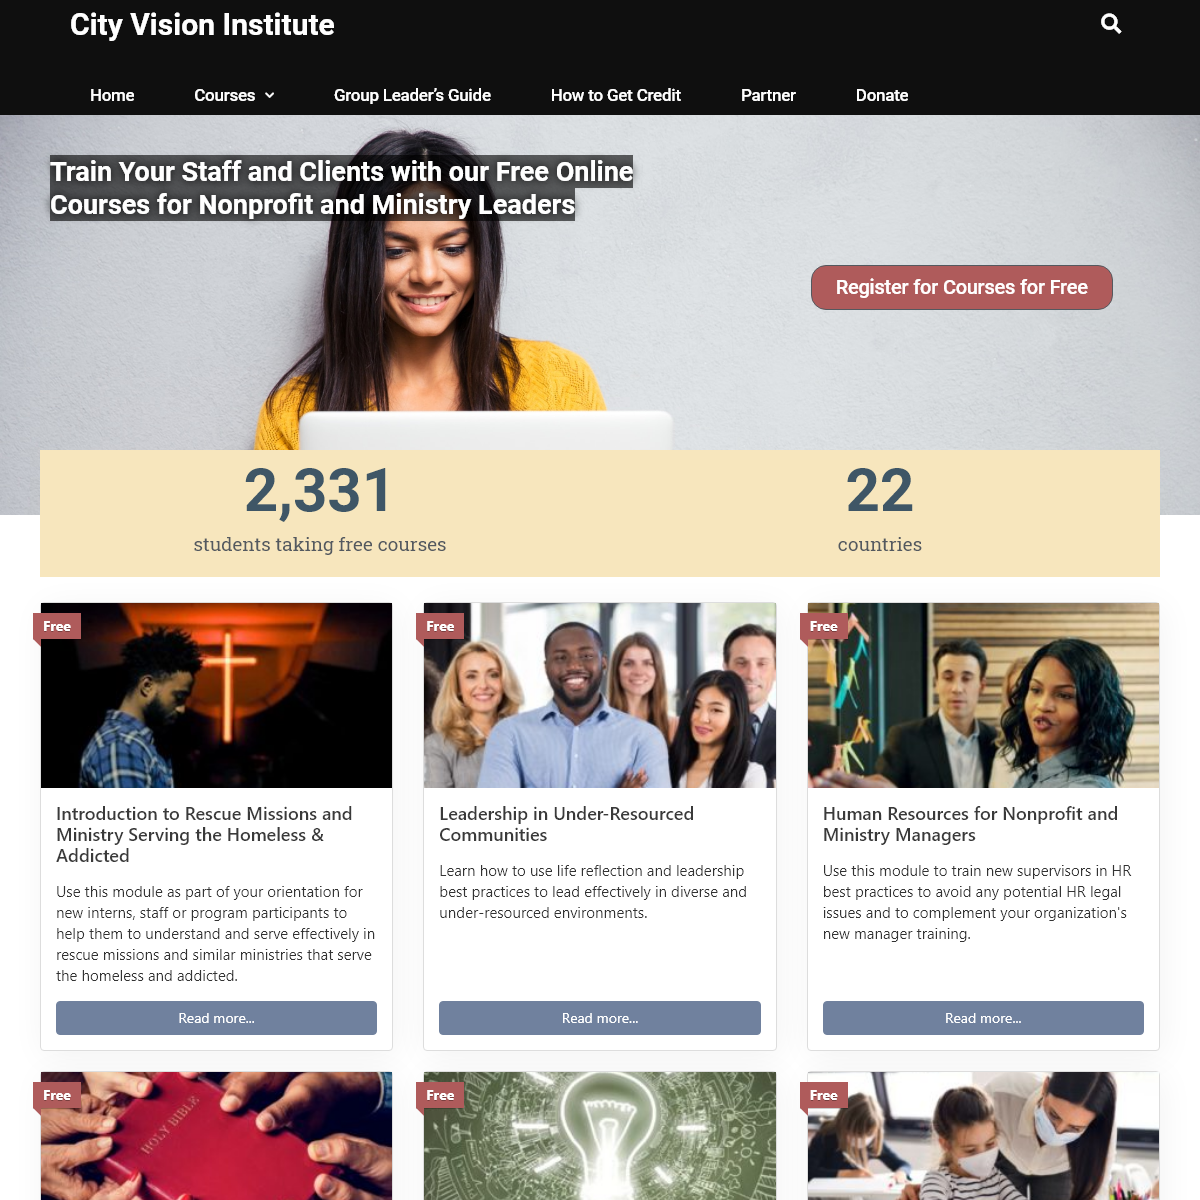 Free Courses for Christian Nonprofit and Ministry Leaders - City Vision Institute